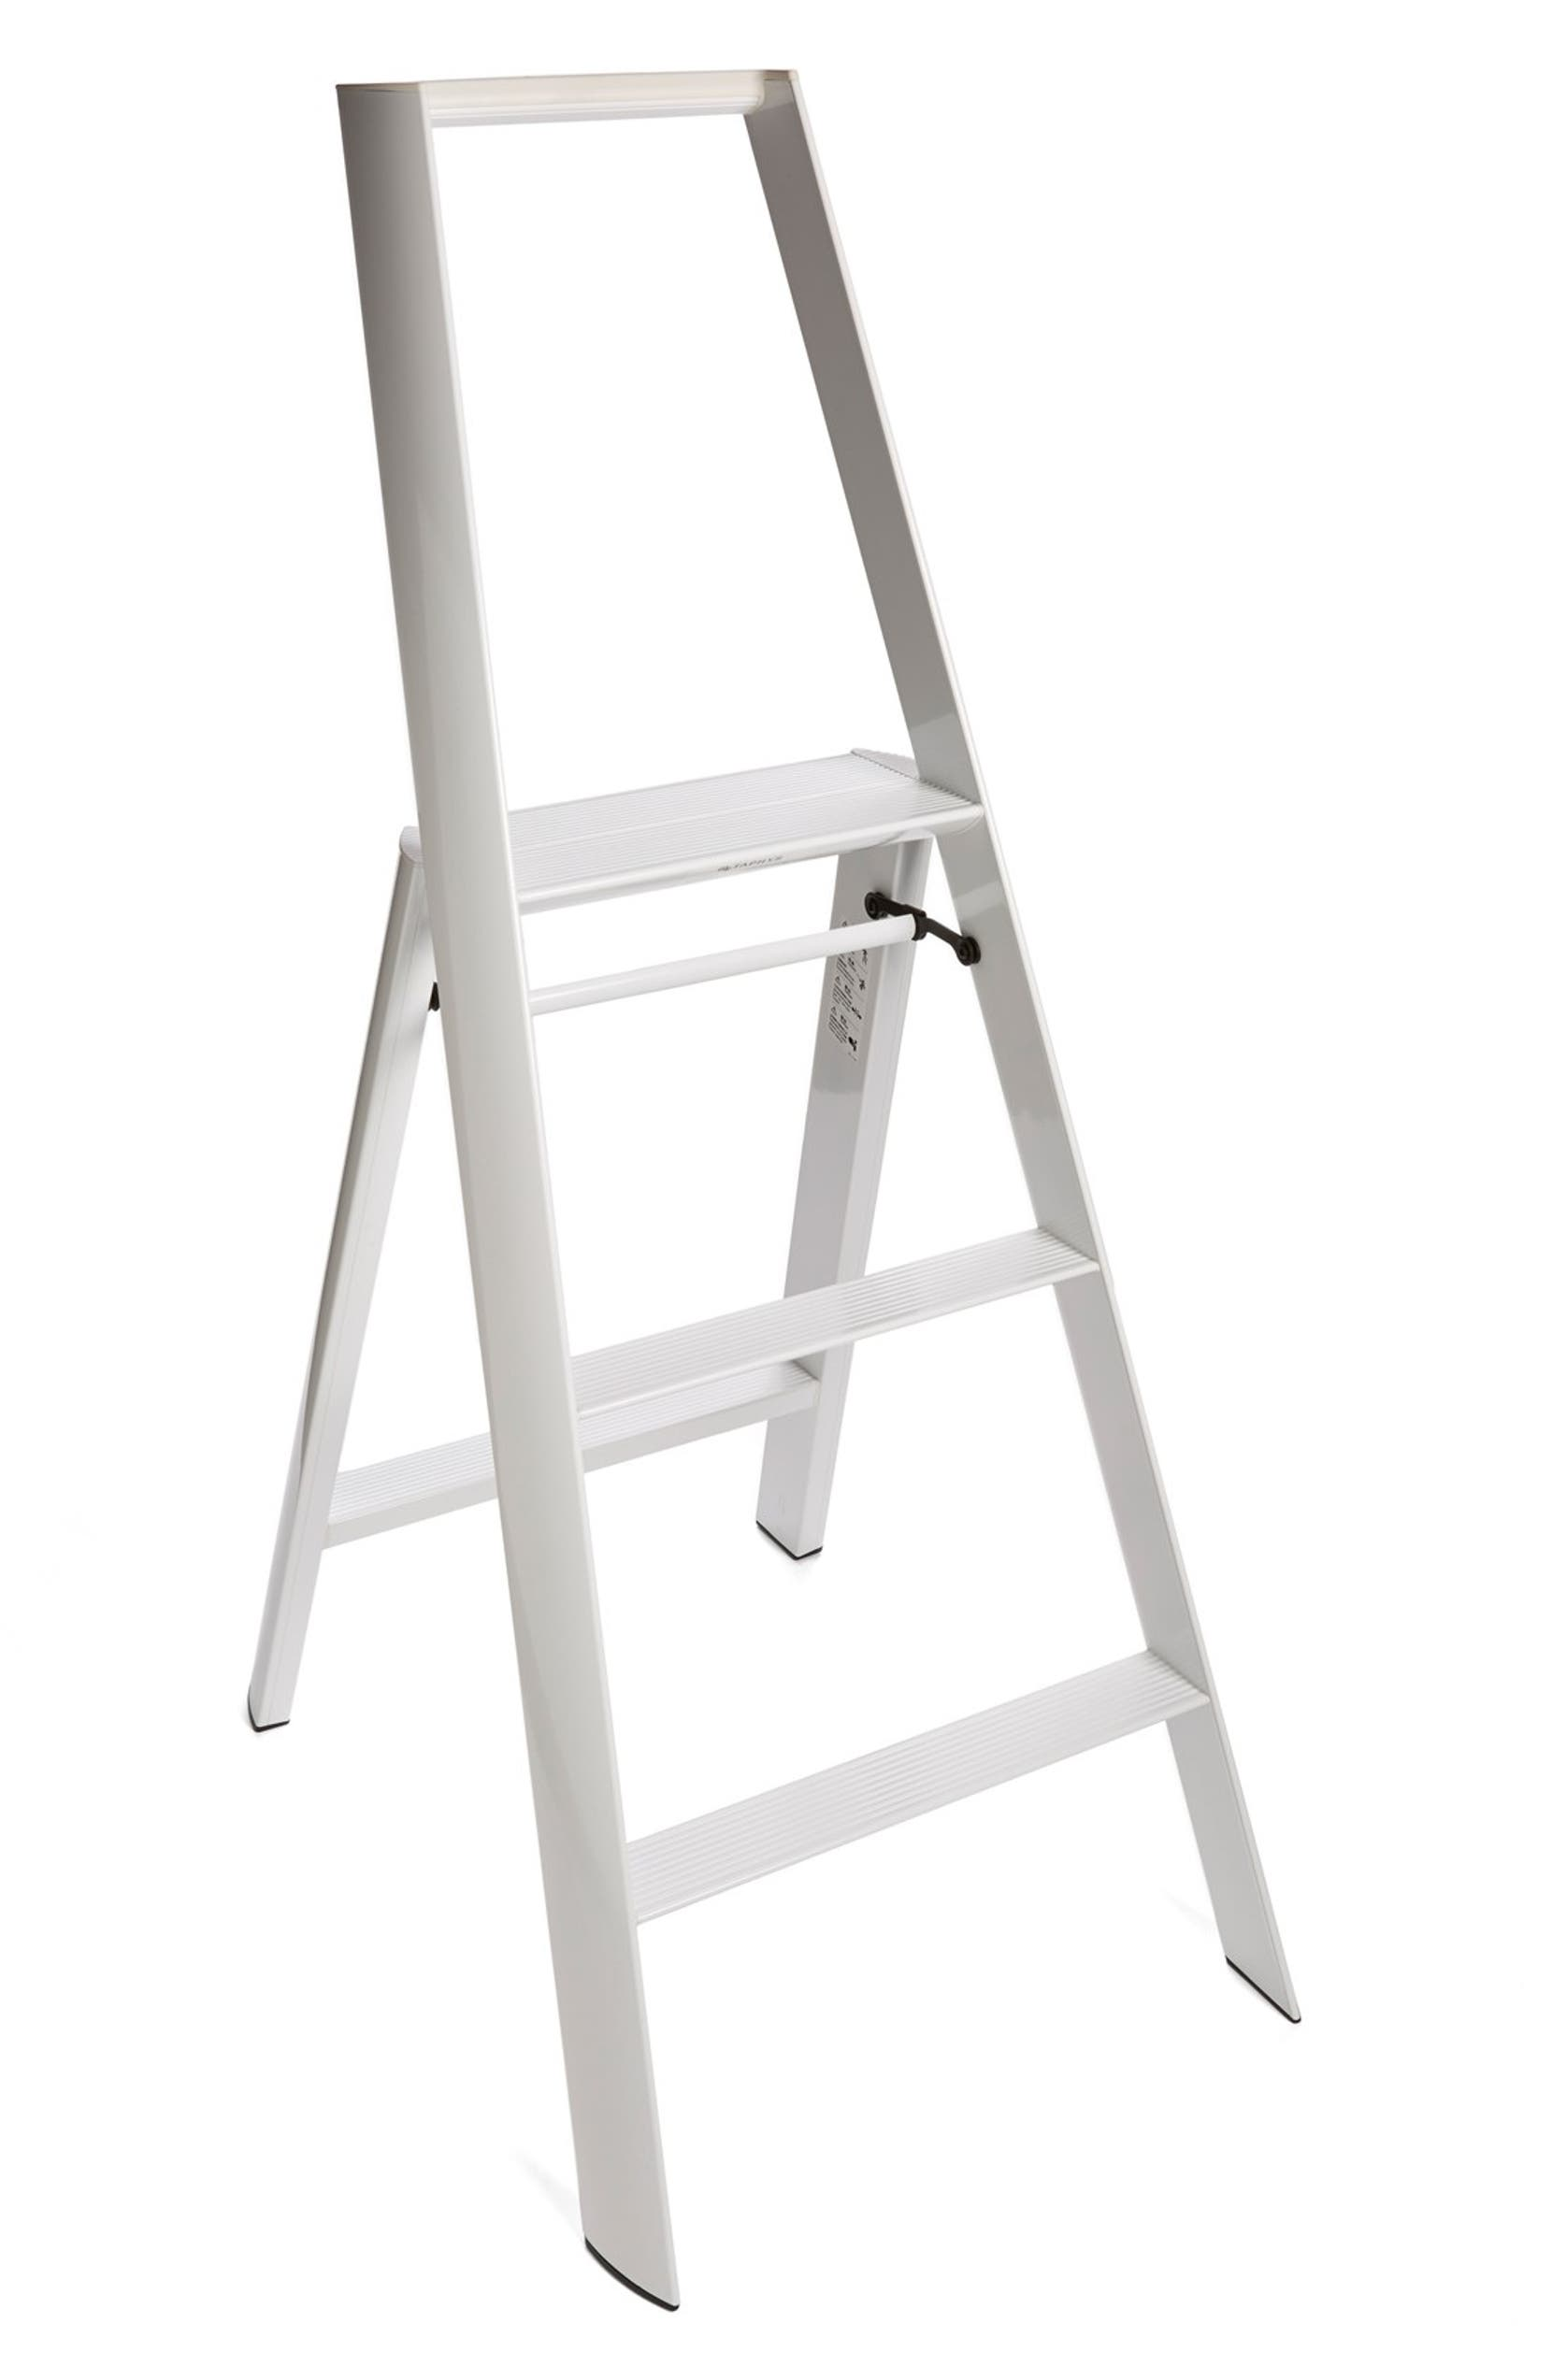 Incredible Hasegawa Lucano 3 Step Step Ladder Nordstrom Caraccident5 Cool Chair Designs And Ideas Caraccident5Info